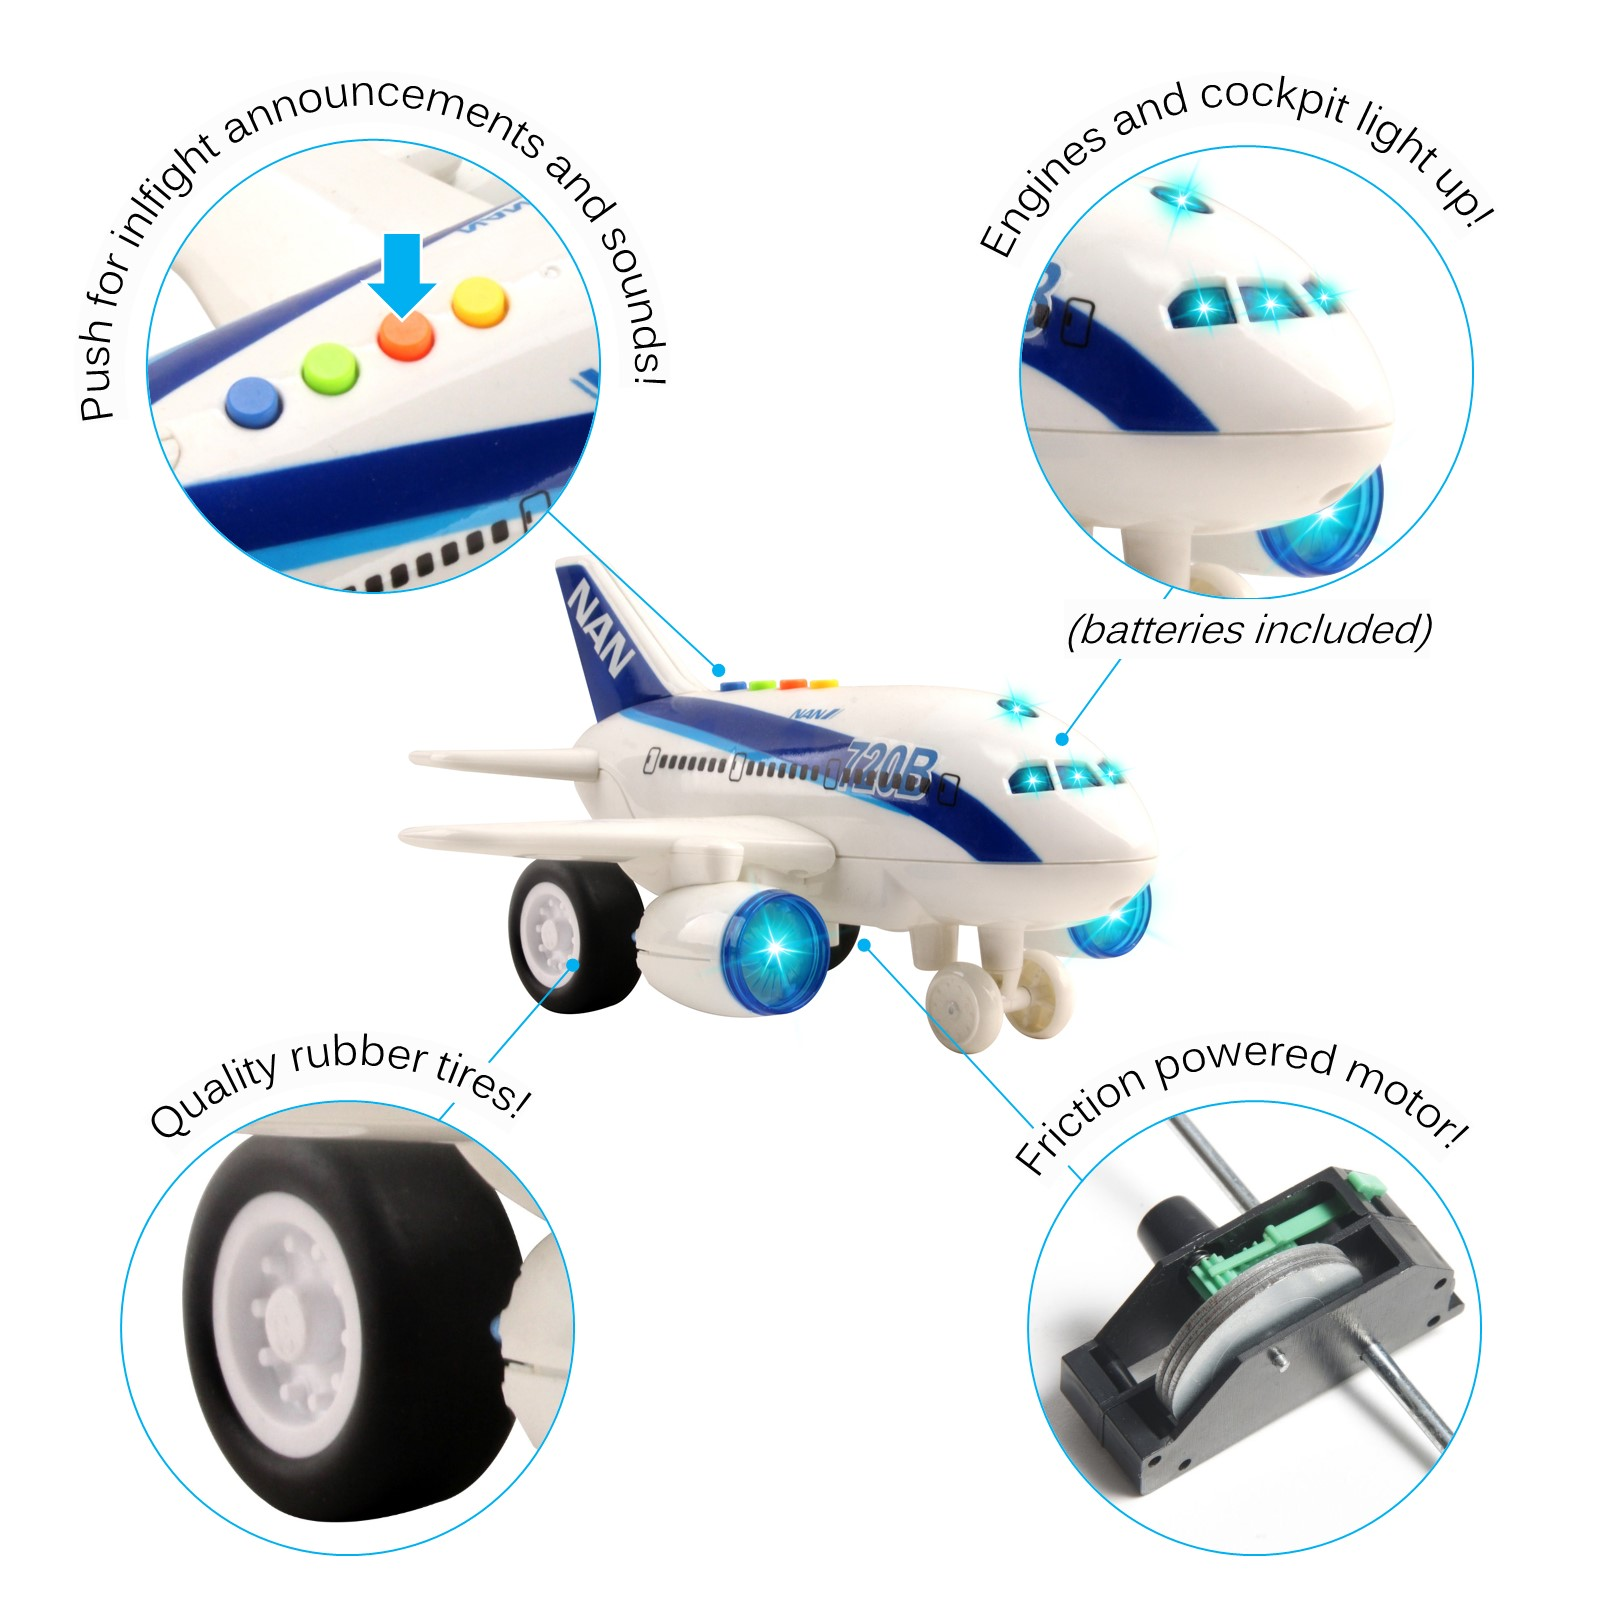 Commercial Airplane Friction Powered Aviation Toy Push And Go 1160 Scale Aircraft With Fun Lights And Sounds Durably Built Kids Pretend Play Air Plane Perfect Gift For Children Boys Girls